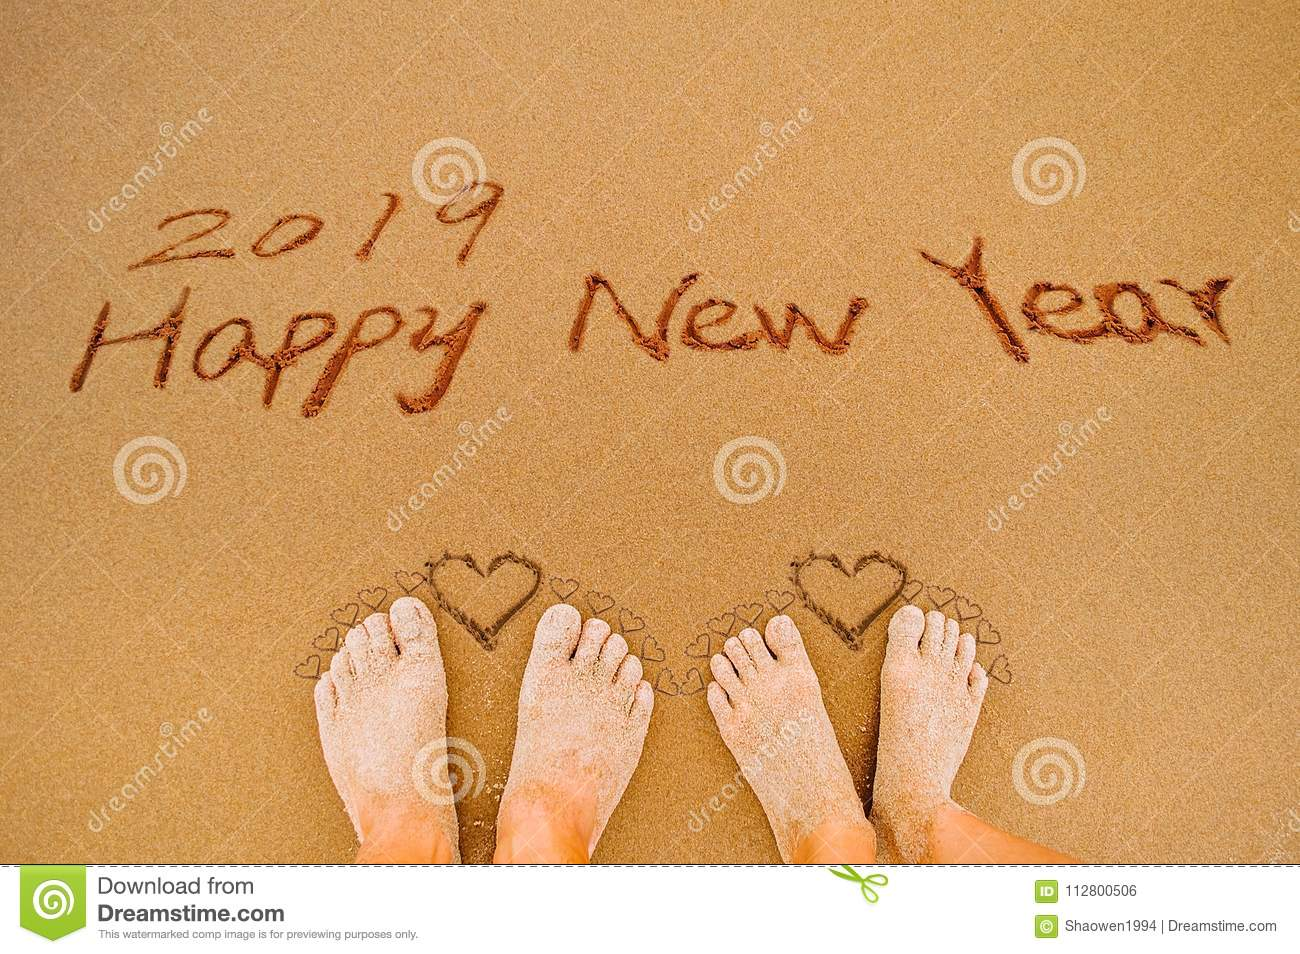 Word 2019 Happy New Year And Lover Feet Write On Beach